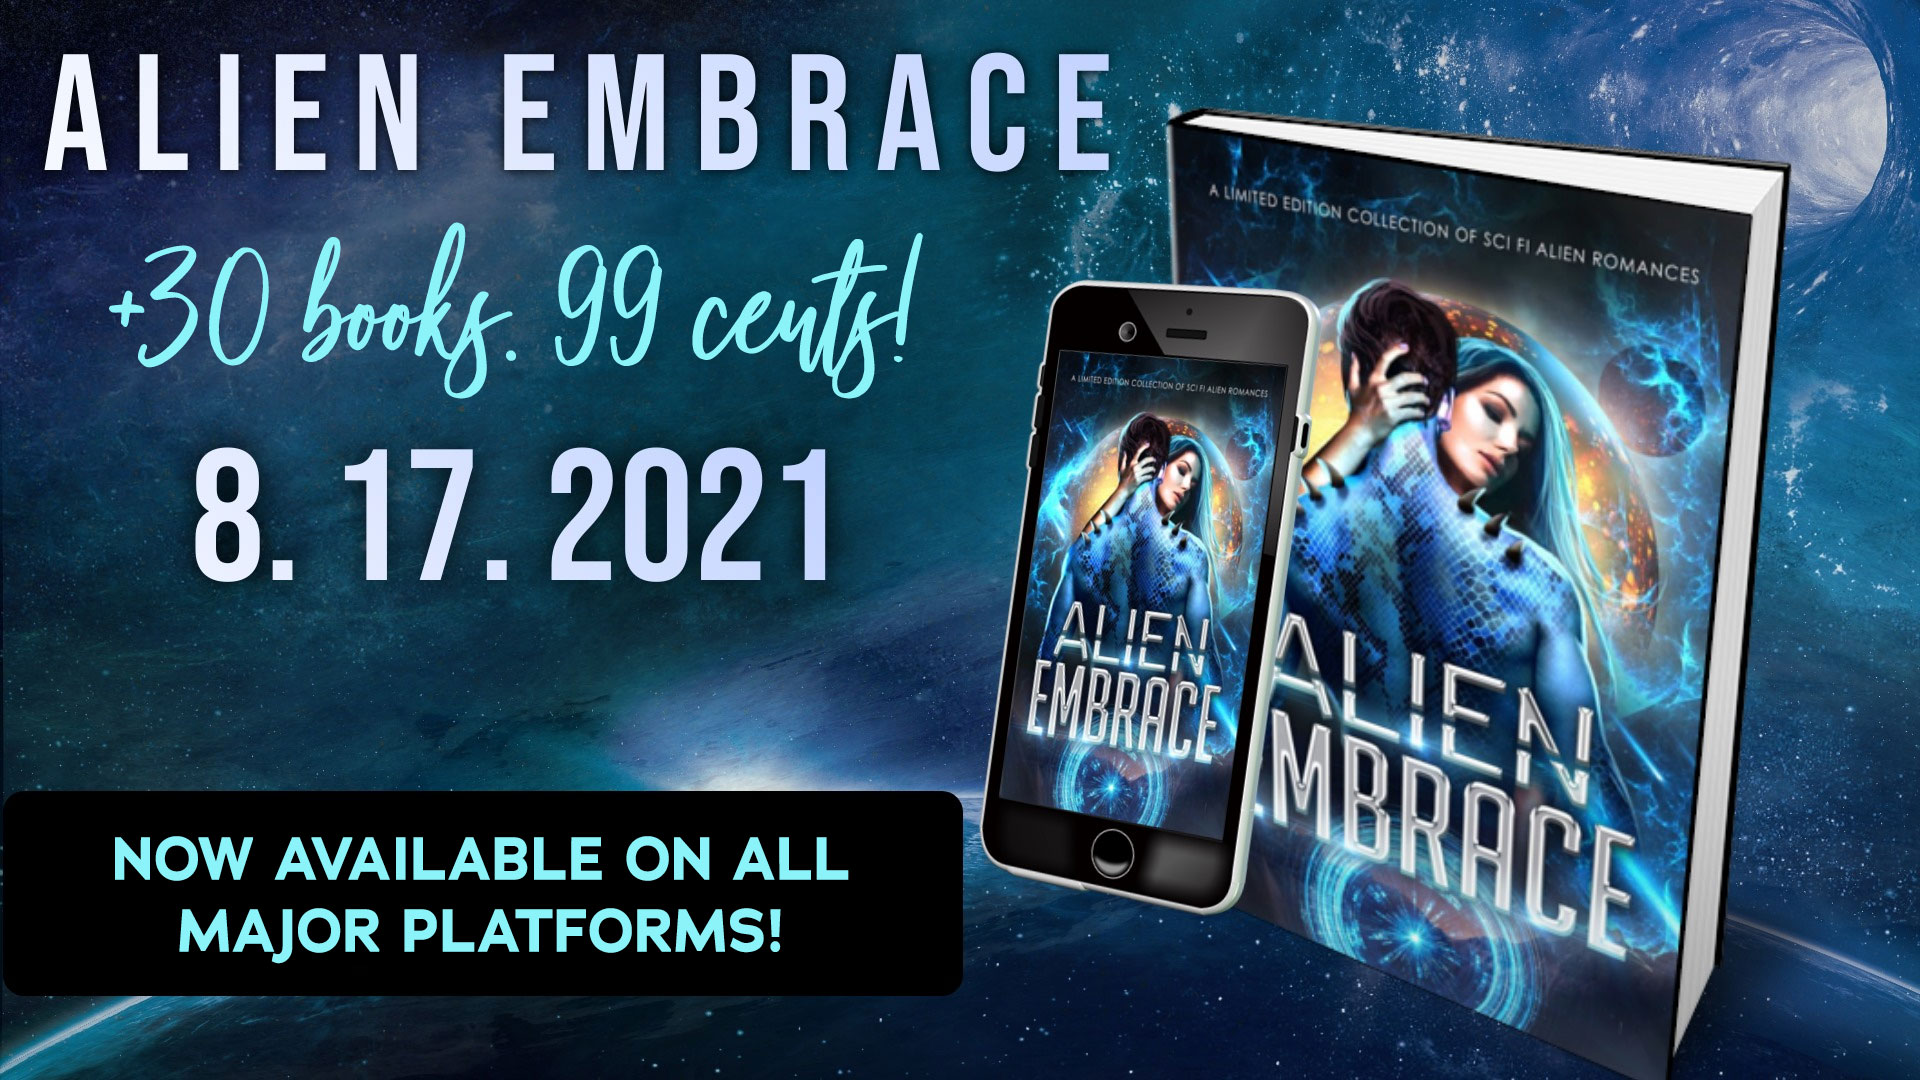 ALIEN EMBRACE: Now Available for $.99! For a limited time only!